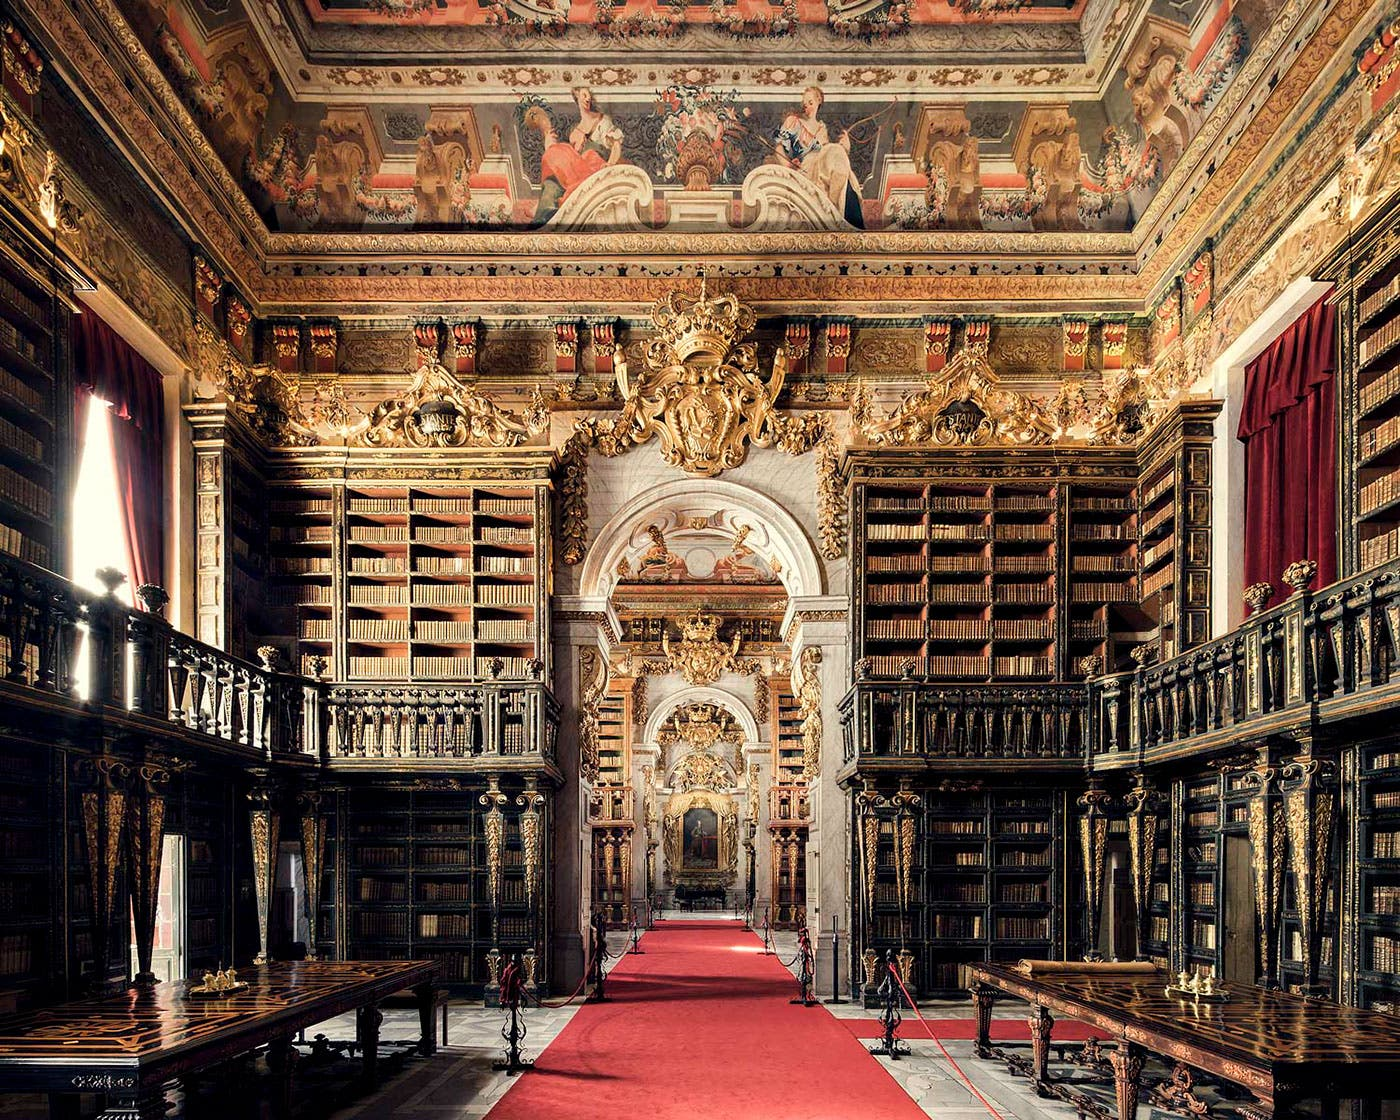 Thibaud Poirier Showcases the Stunning Beauty of Europe's Libraries